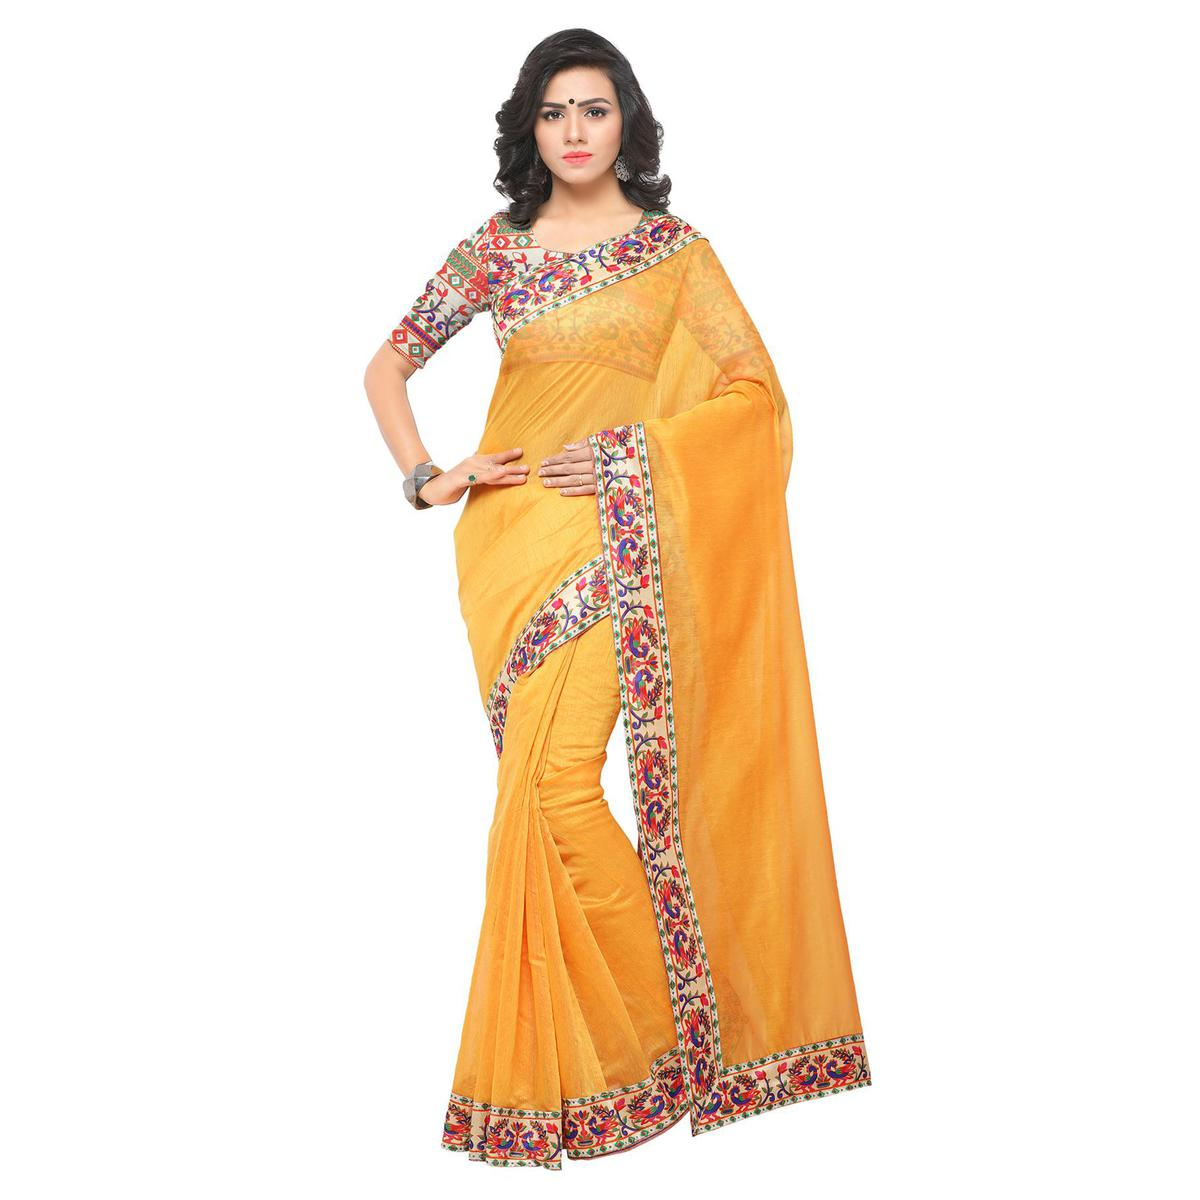 2044b90e33 Buy Pretty Yellow Colored Lace Bordered Chanderi Silk Saree for womens  online India, Best Prices, Reviews - Peachmode